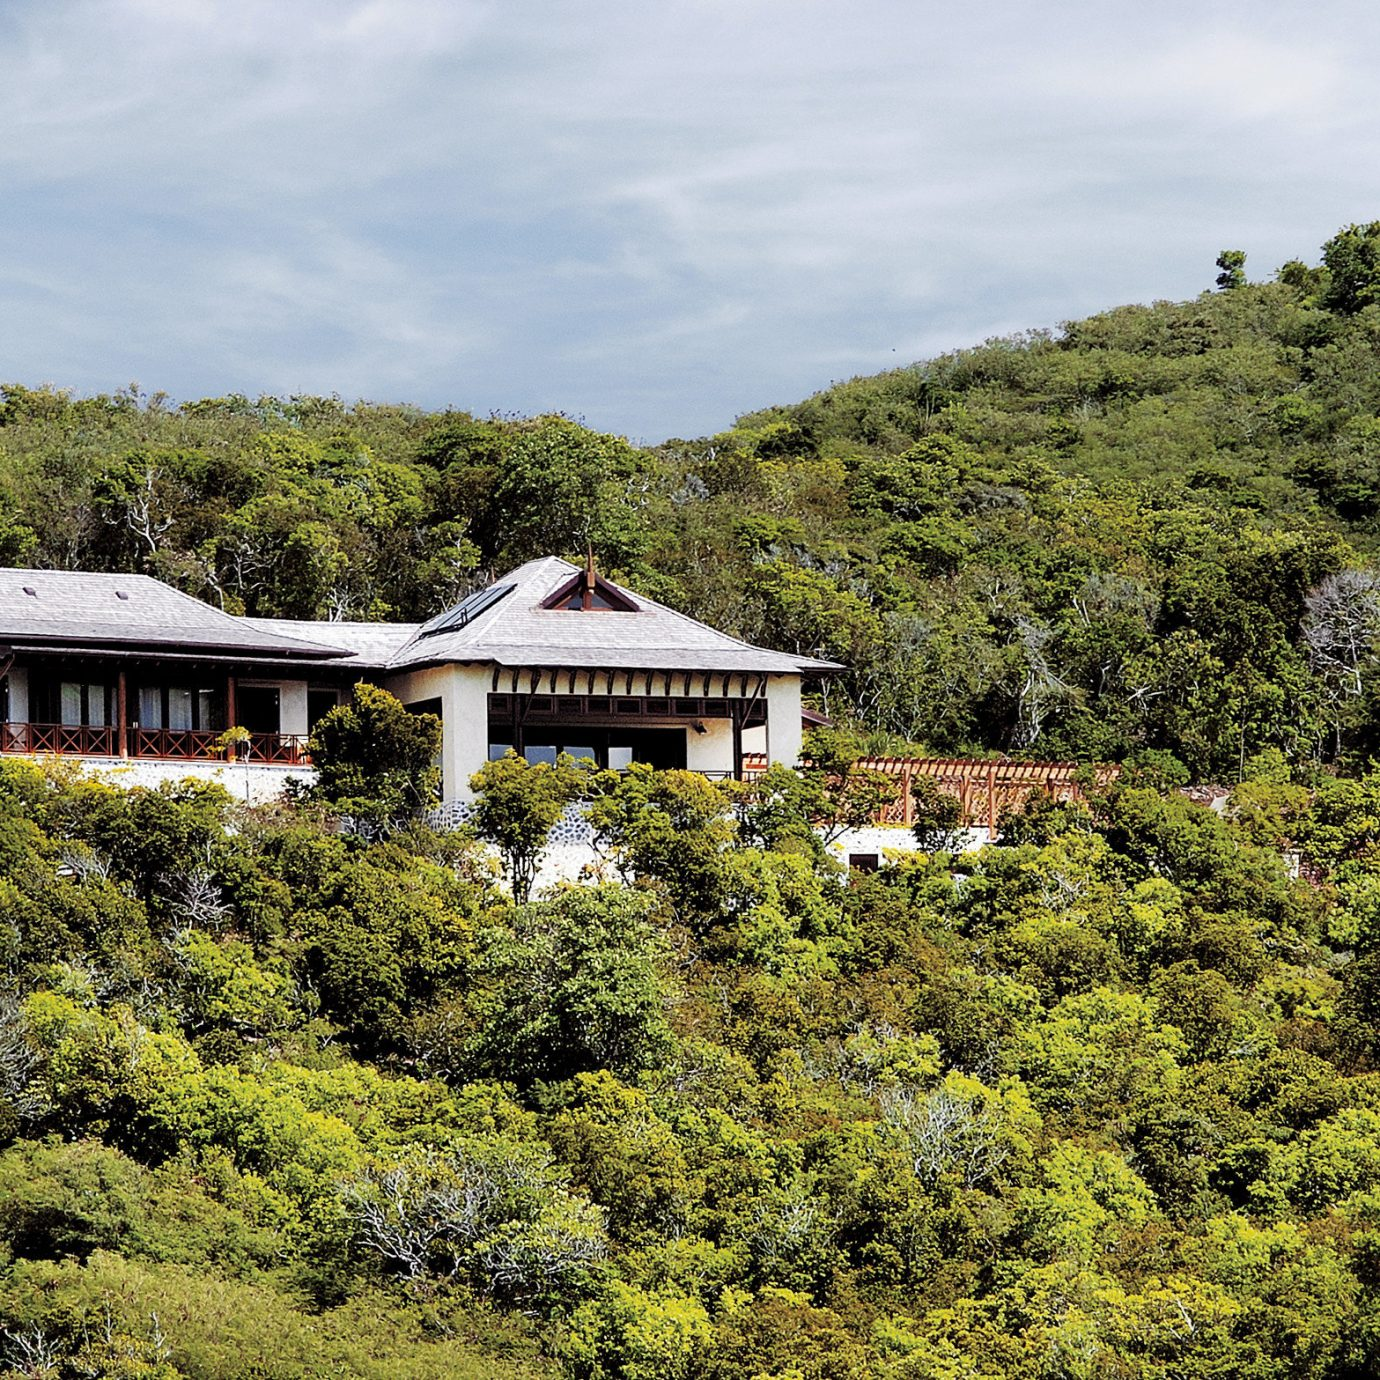 Exterior Island Jungle Resort Tropical tree sky mountain house hill rural area Forest landscape Village lush bushes hillside surrounded